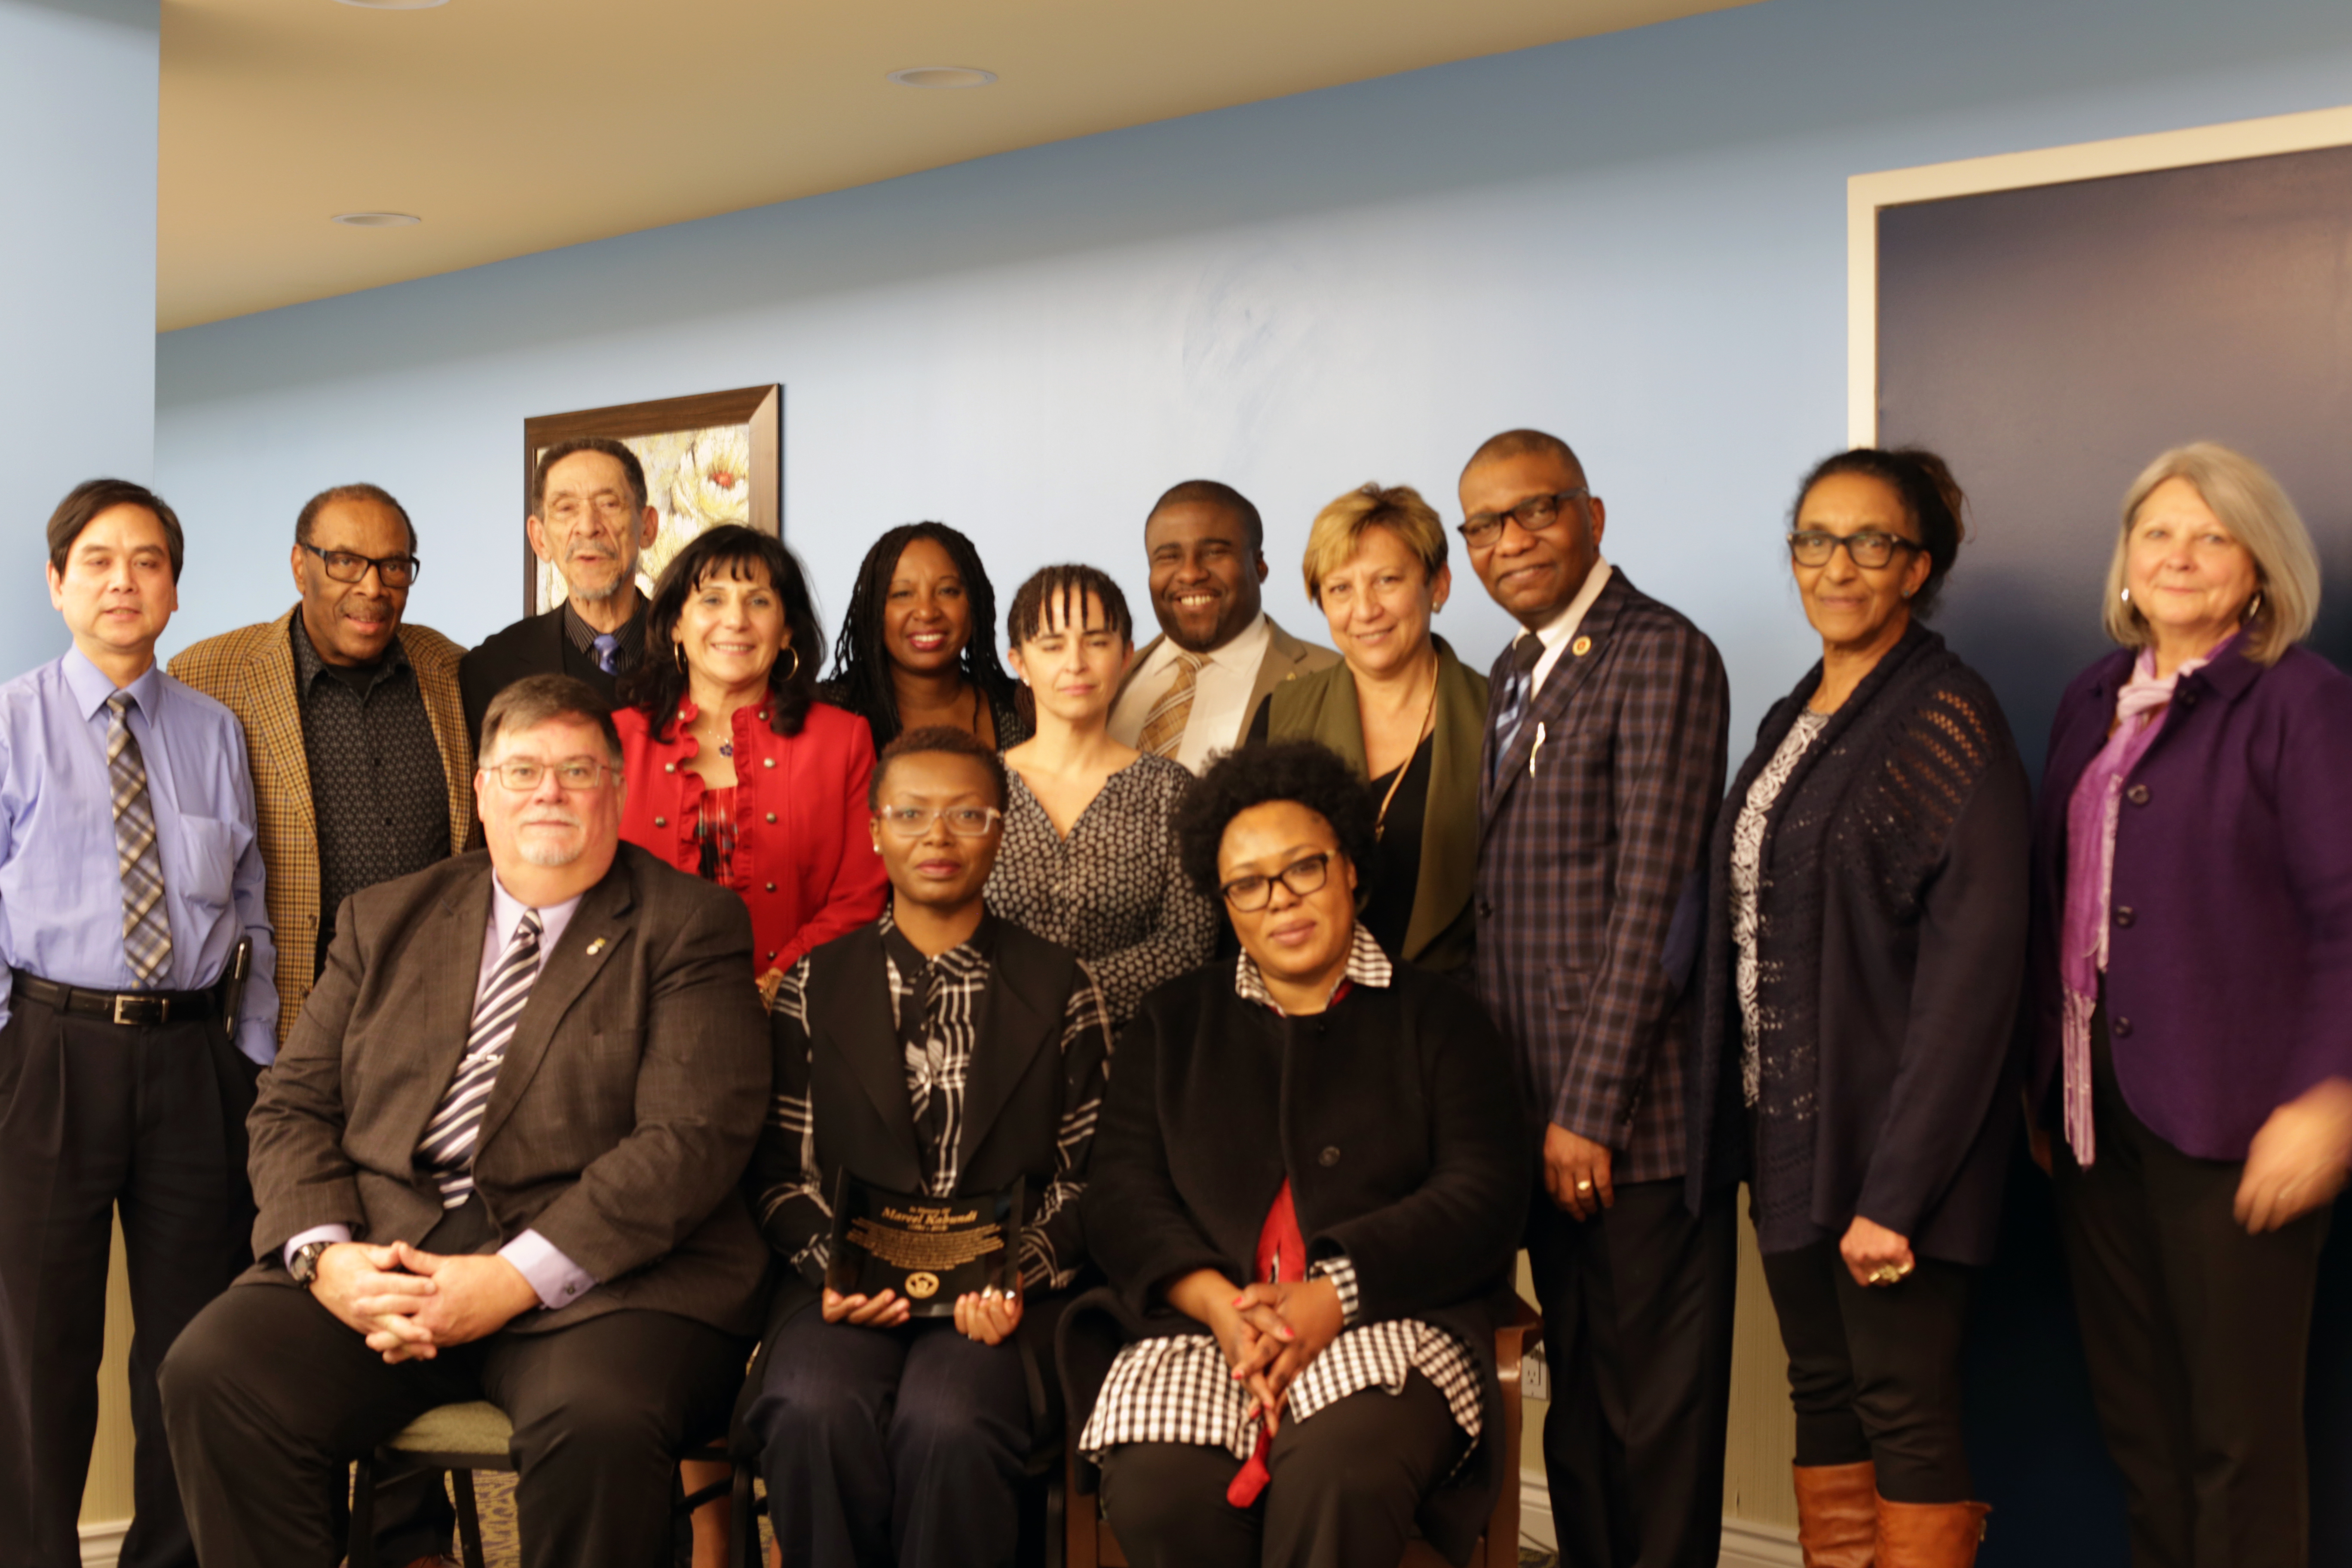 A photo of the members of the National Ethnocultural Advisory Committee